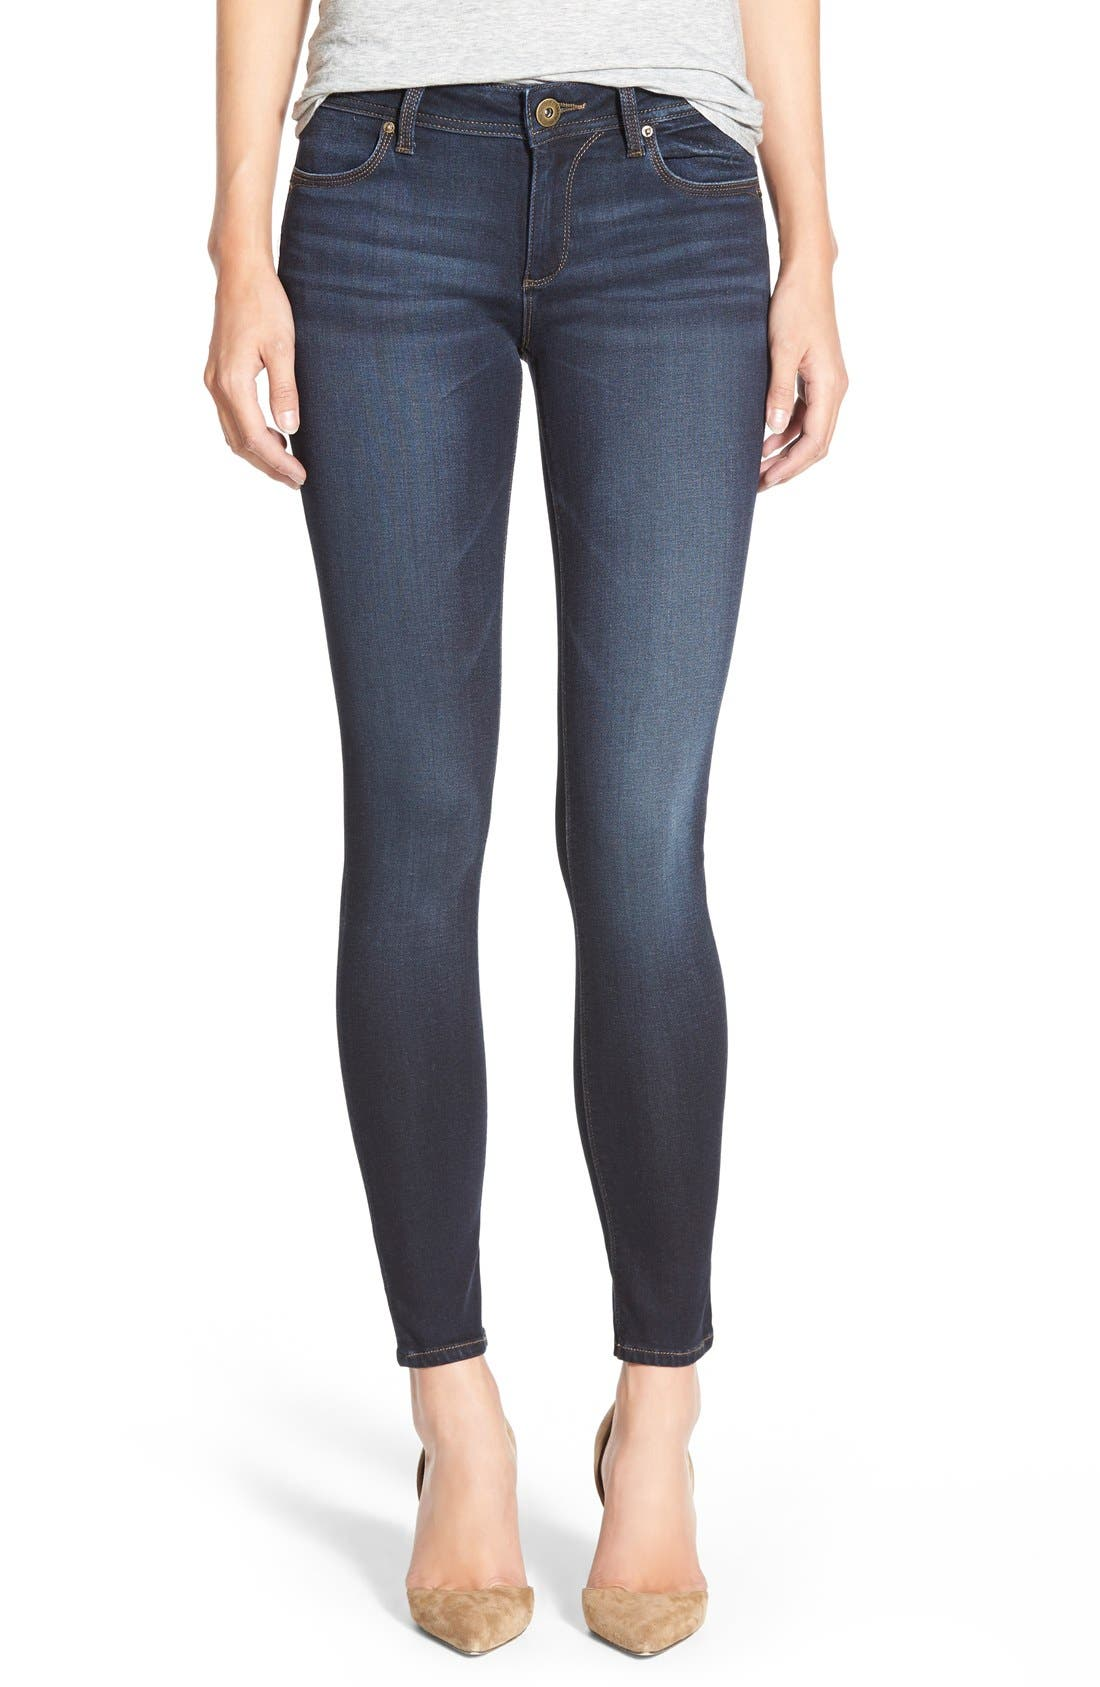 'Emma' Power Legging Jeans,                         Main,                         color, 405